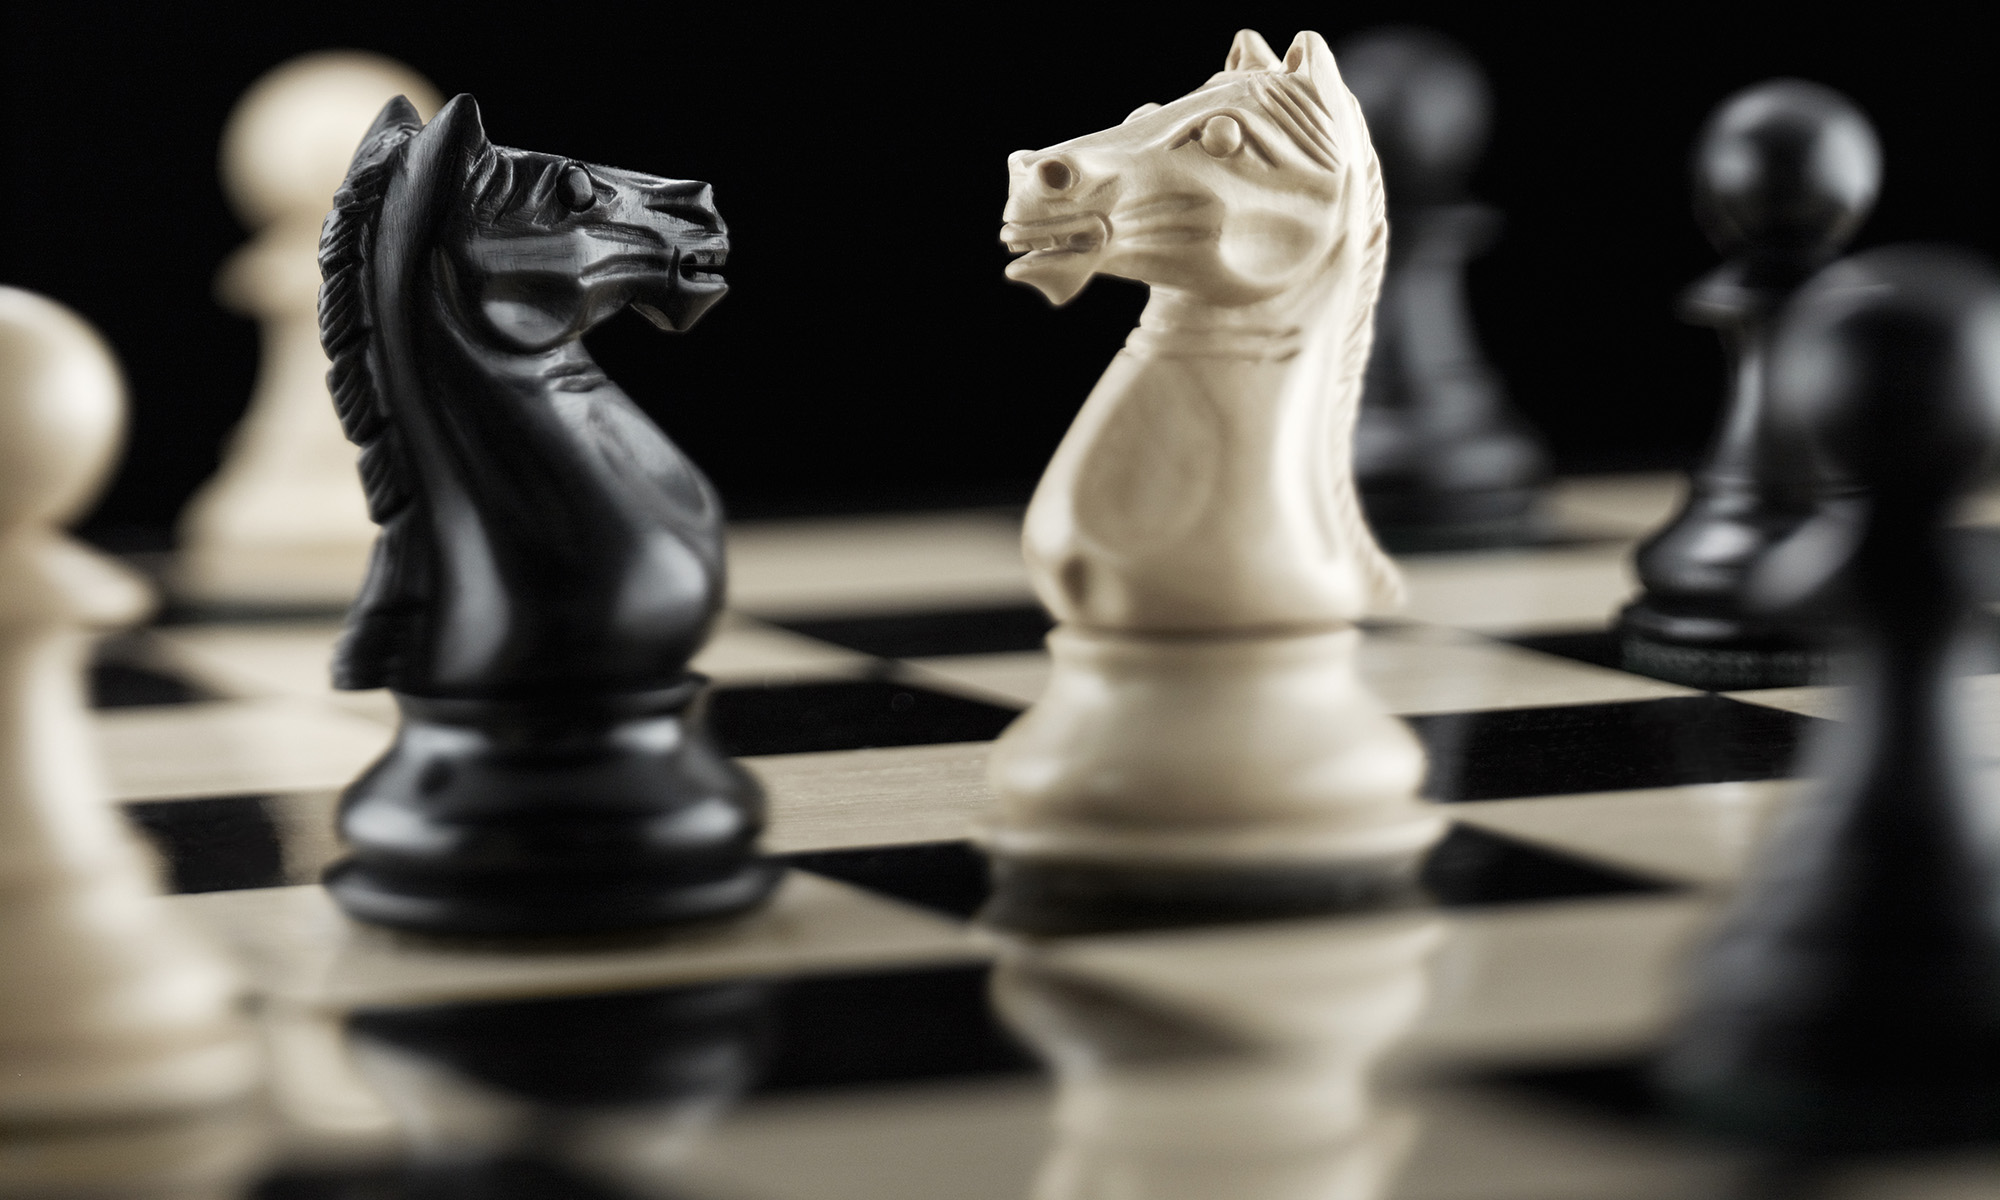 I, Chess Master - What computer defeated a champion chess